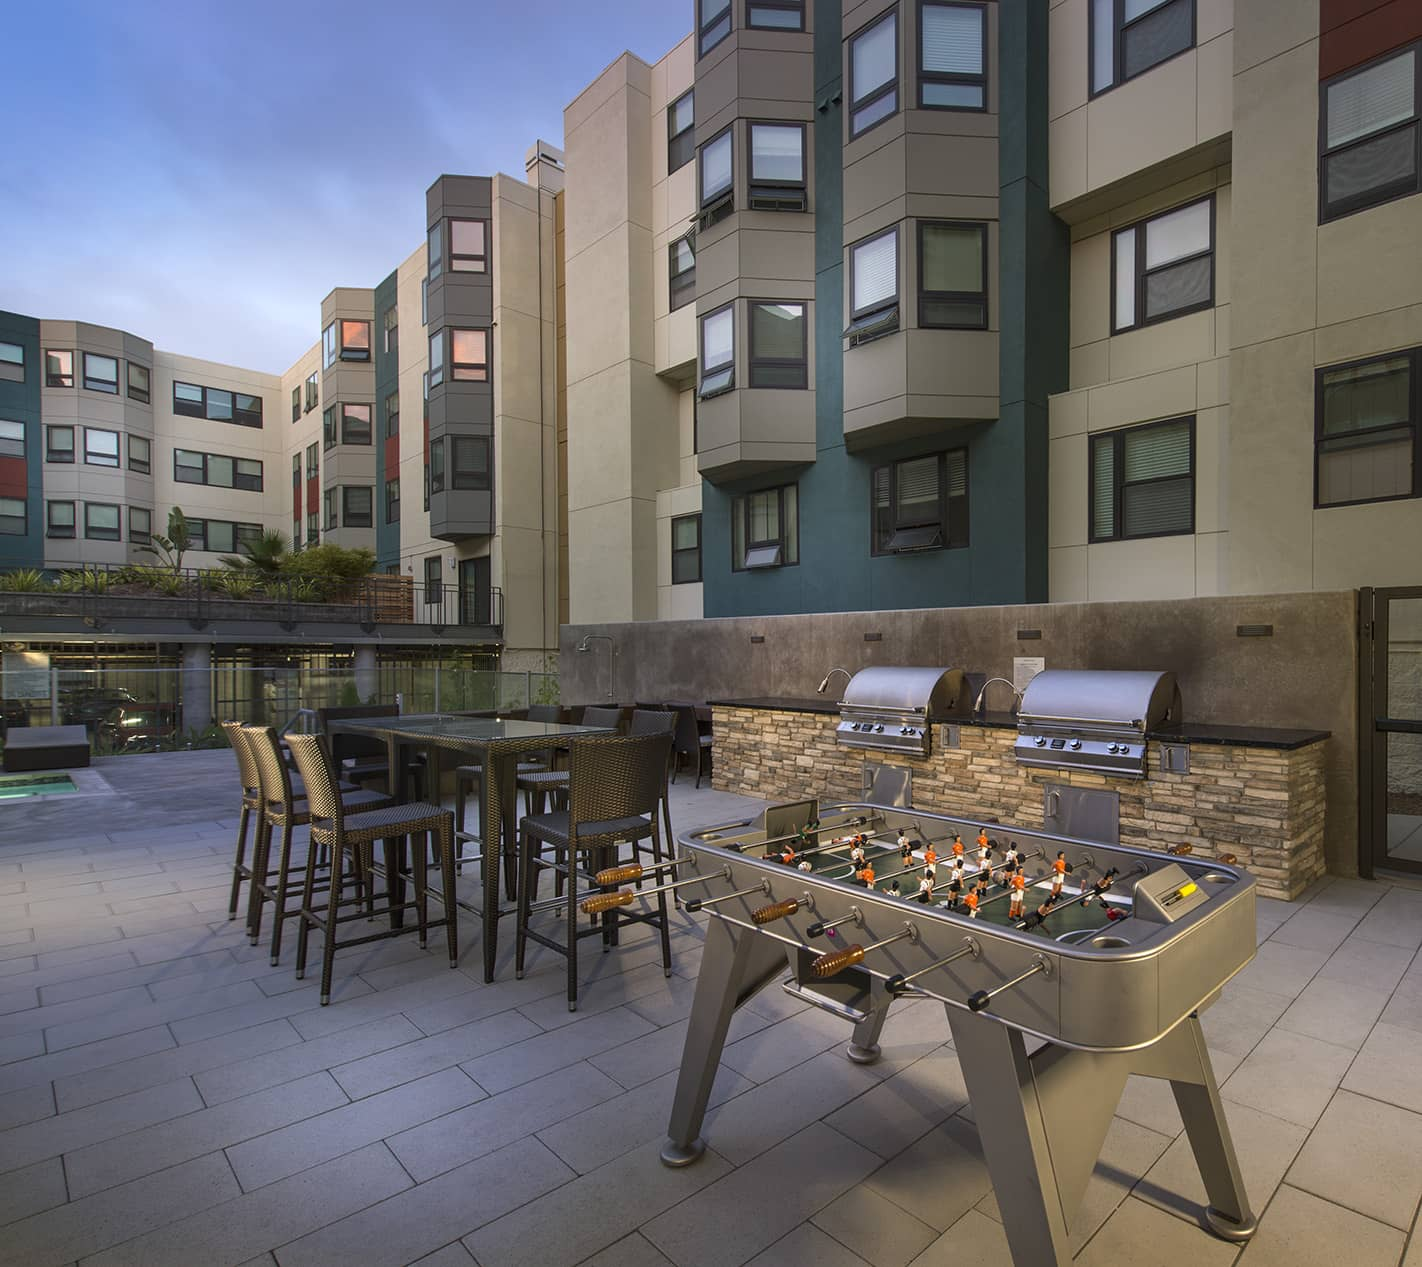 San Francisco Apartment Rentals Monthly: Photos And Tours Of 2000 Post Apartments